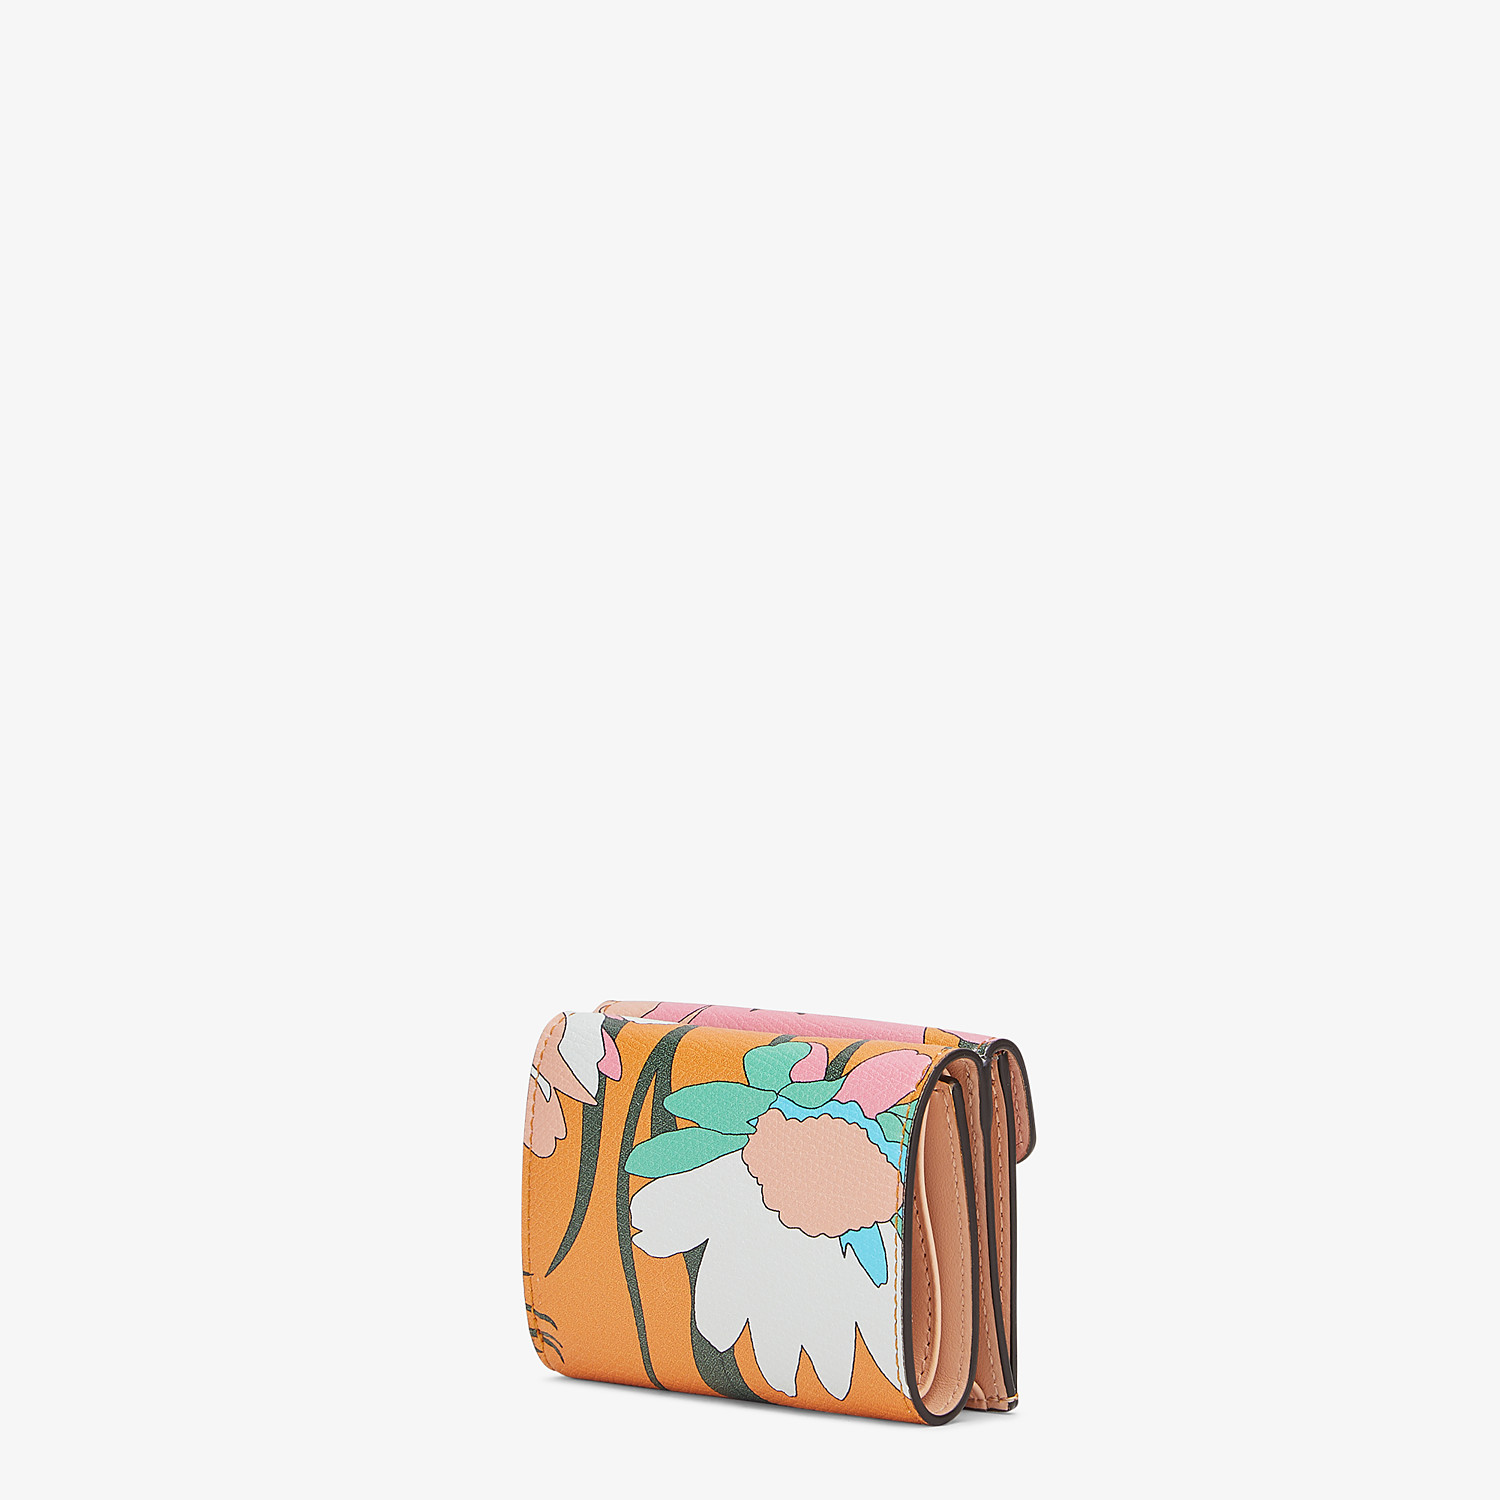 FENDI MICRO TRIFOLD - Multicolor leather wallet - view 2 detail